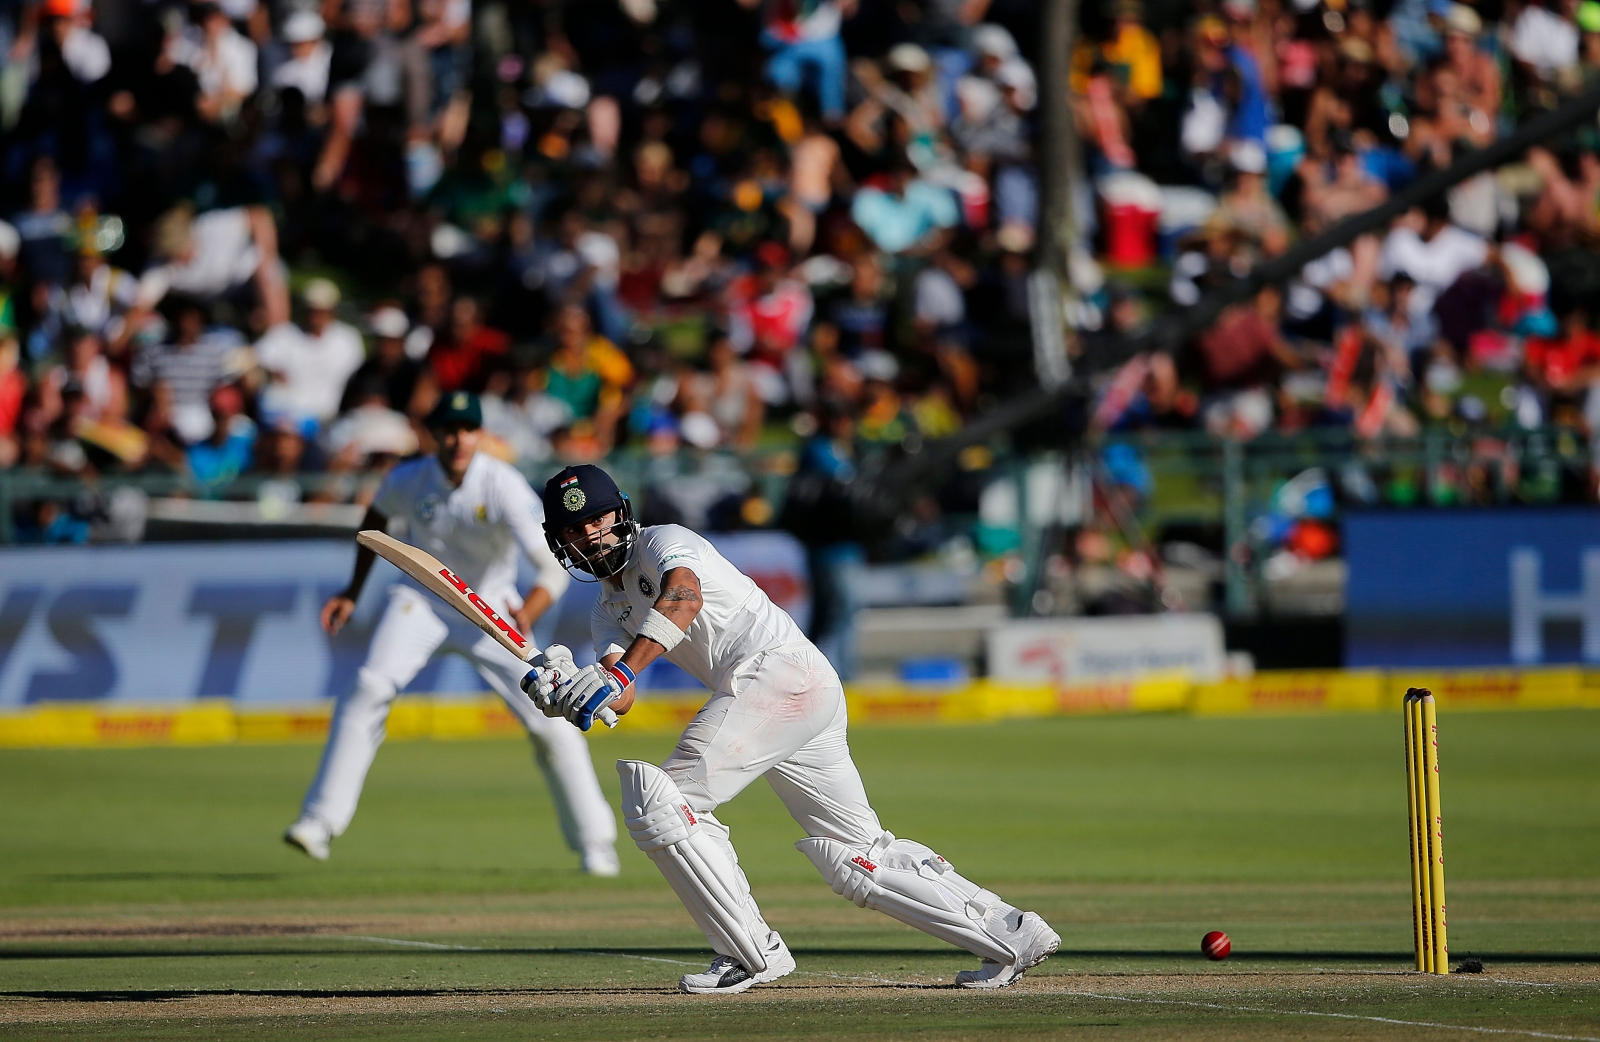 Watch South Africa vs India on TV, online